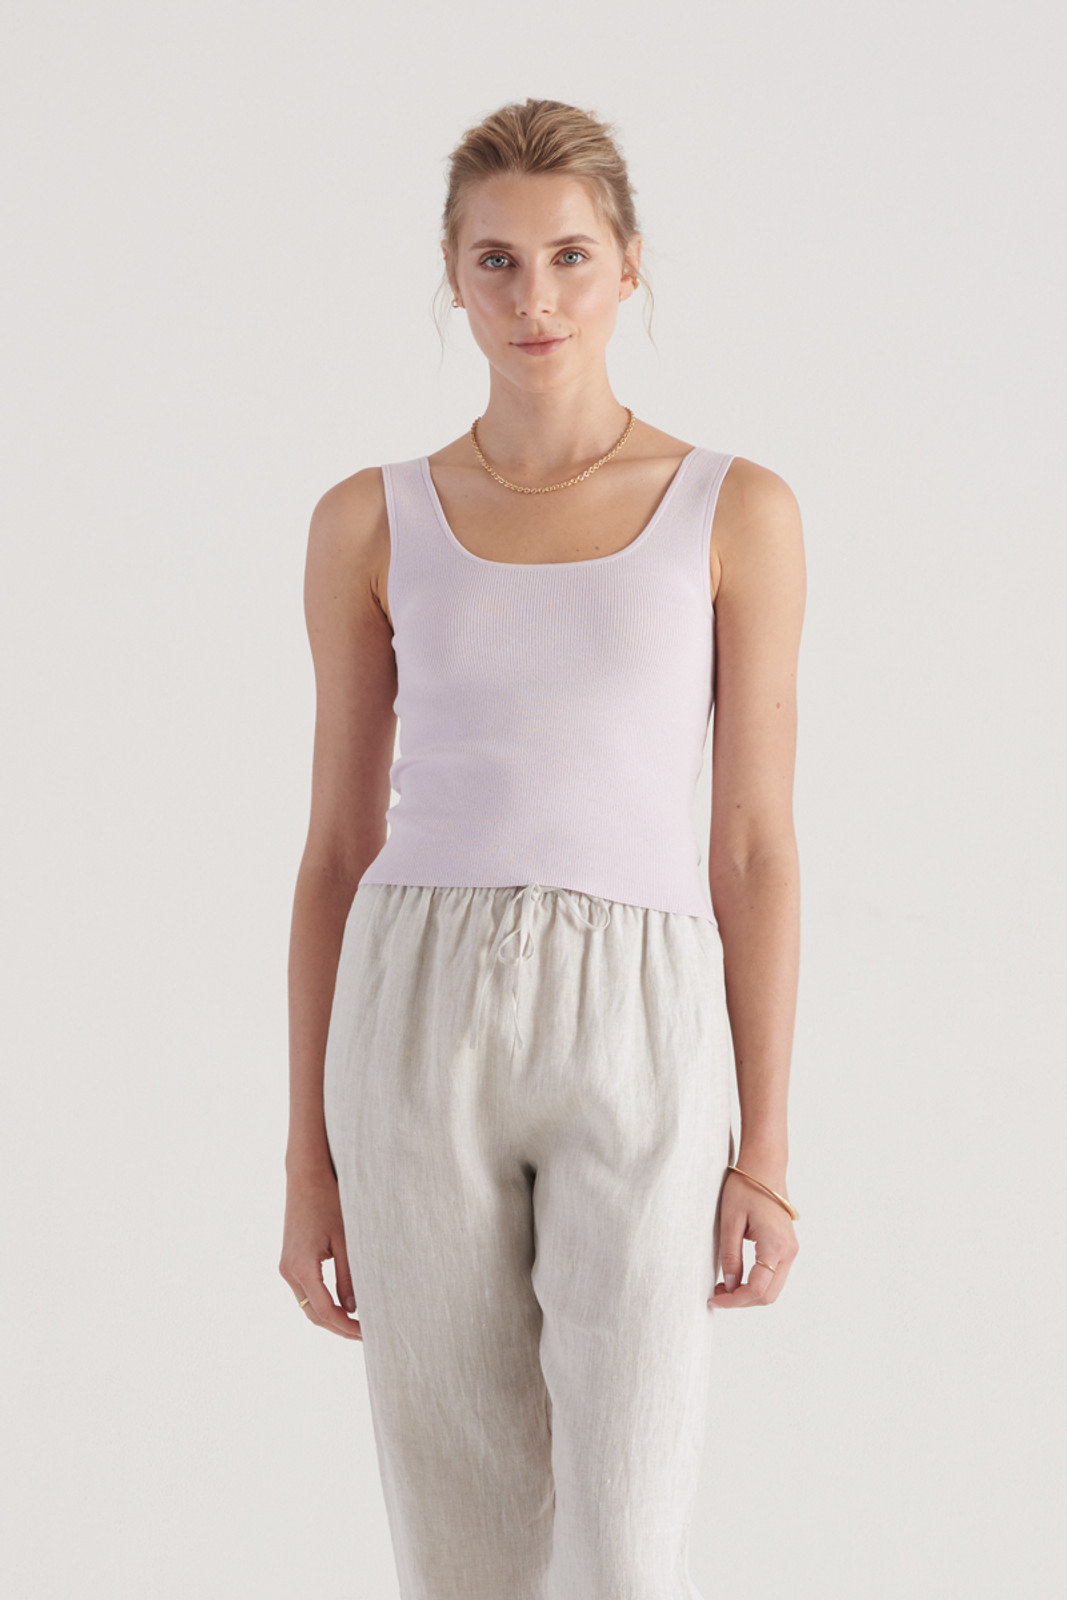 Elka Collective WomensFrame Knit Top Lilac  0